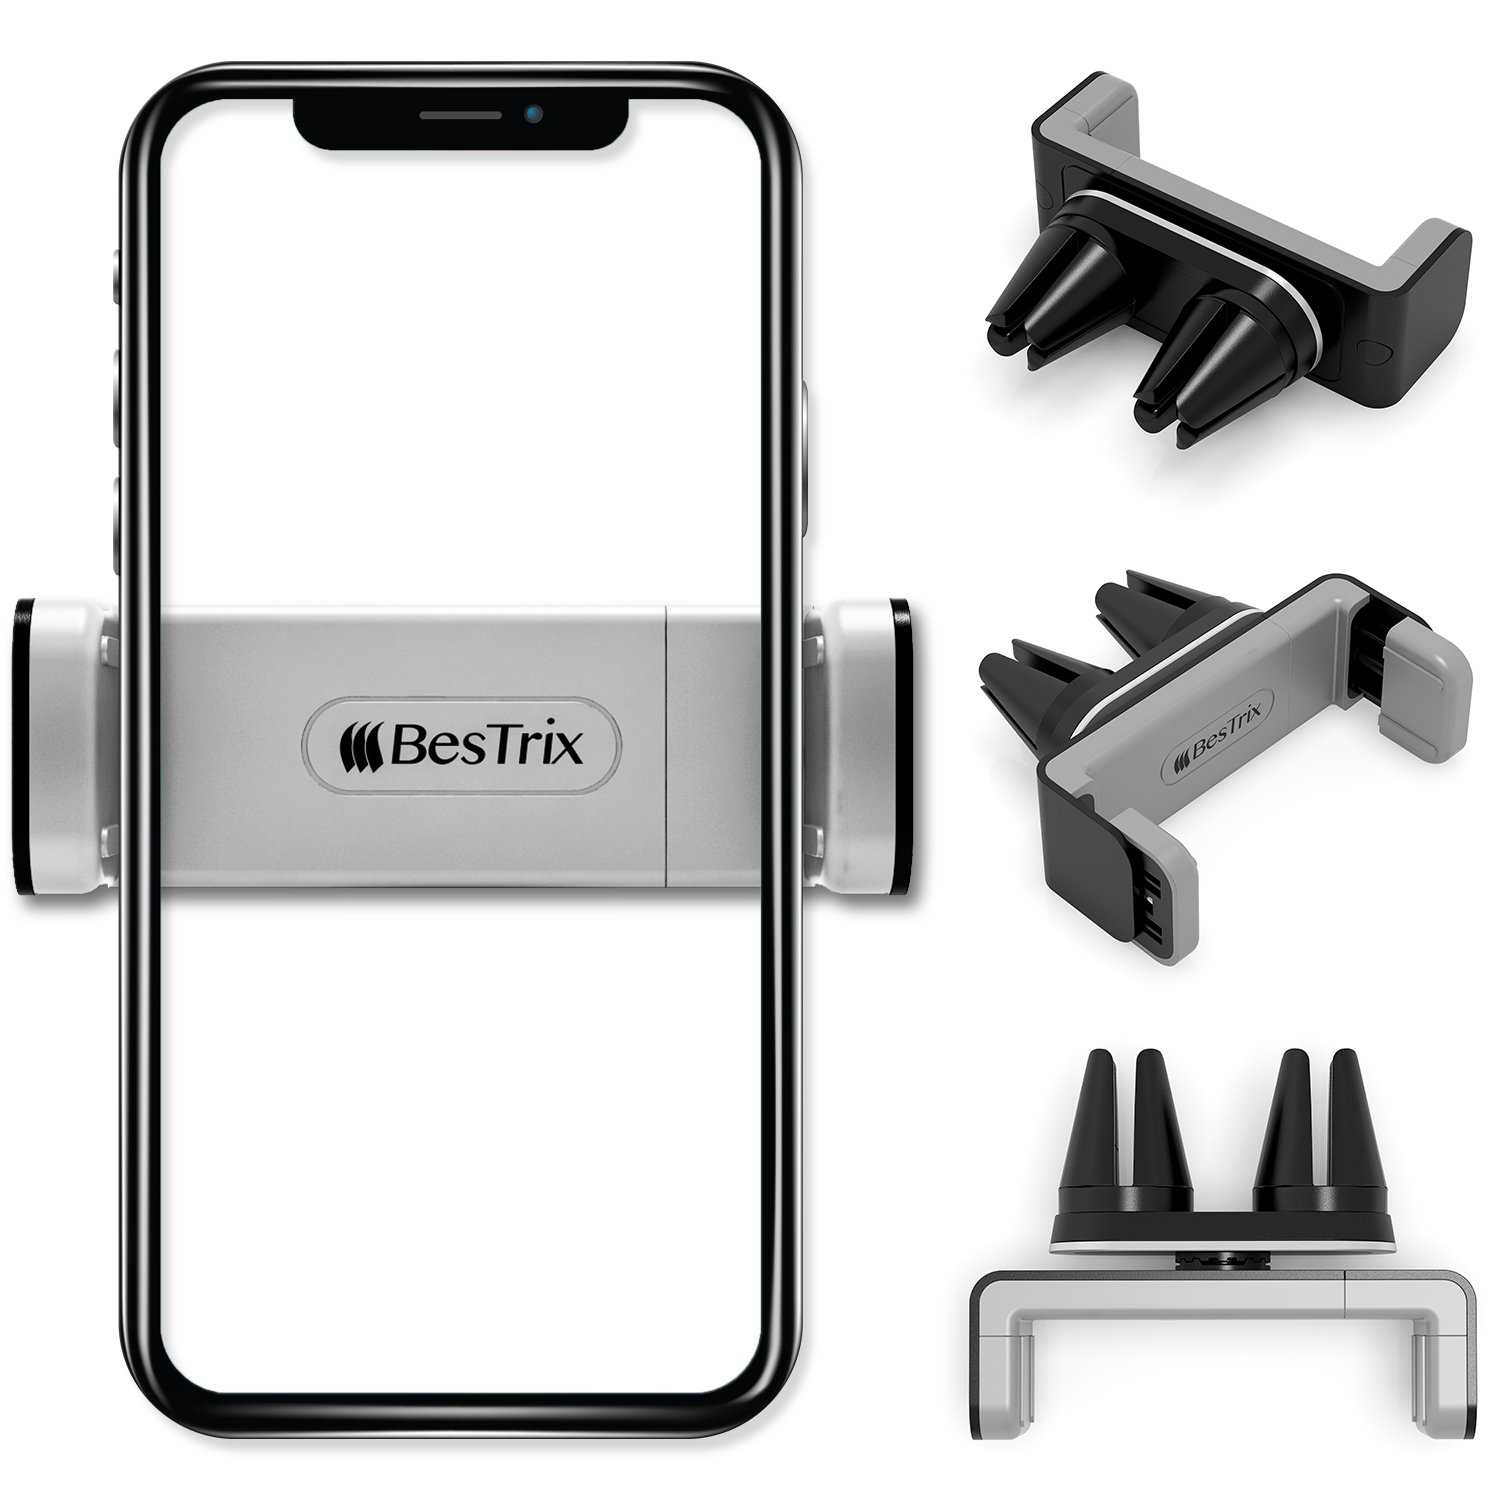 New Designed Air Vent Cell Phone Car Mount With Adjustable Size Up To 6'' | Secure Double Clamp Grip, Compact & Durable Holder For All Smartphones & iPhones (Grey) by BESTRIX